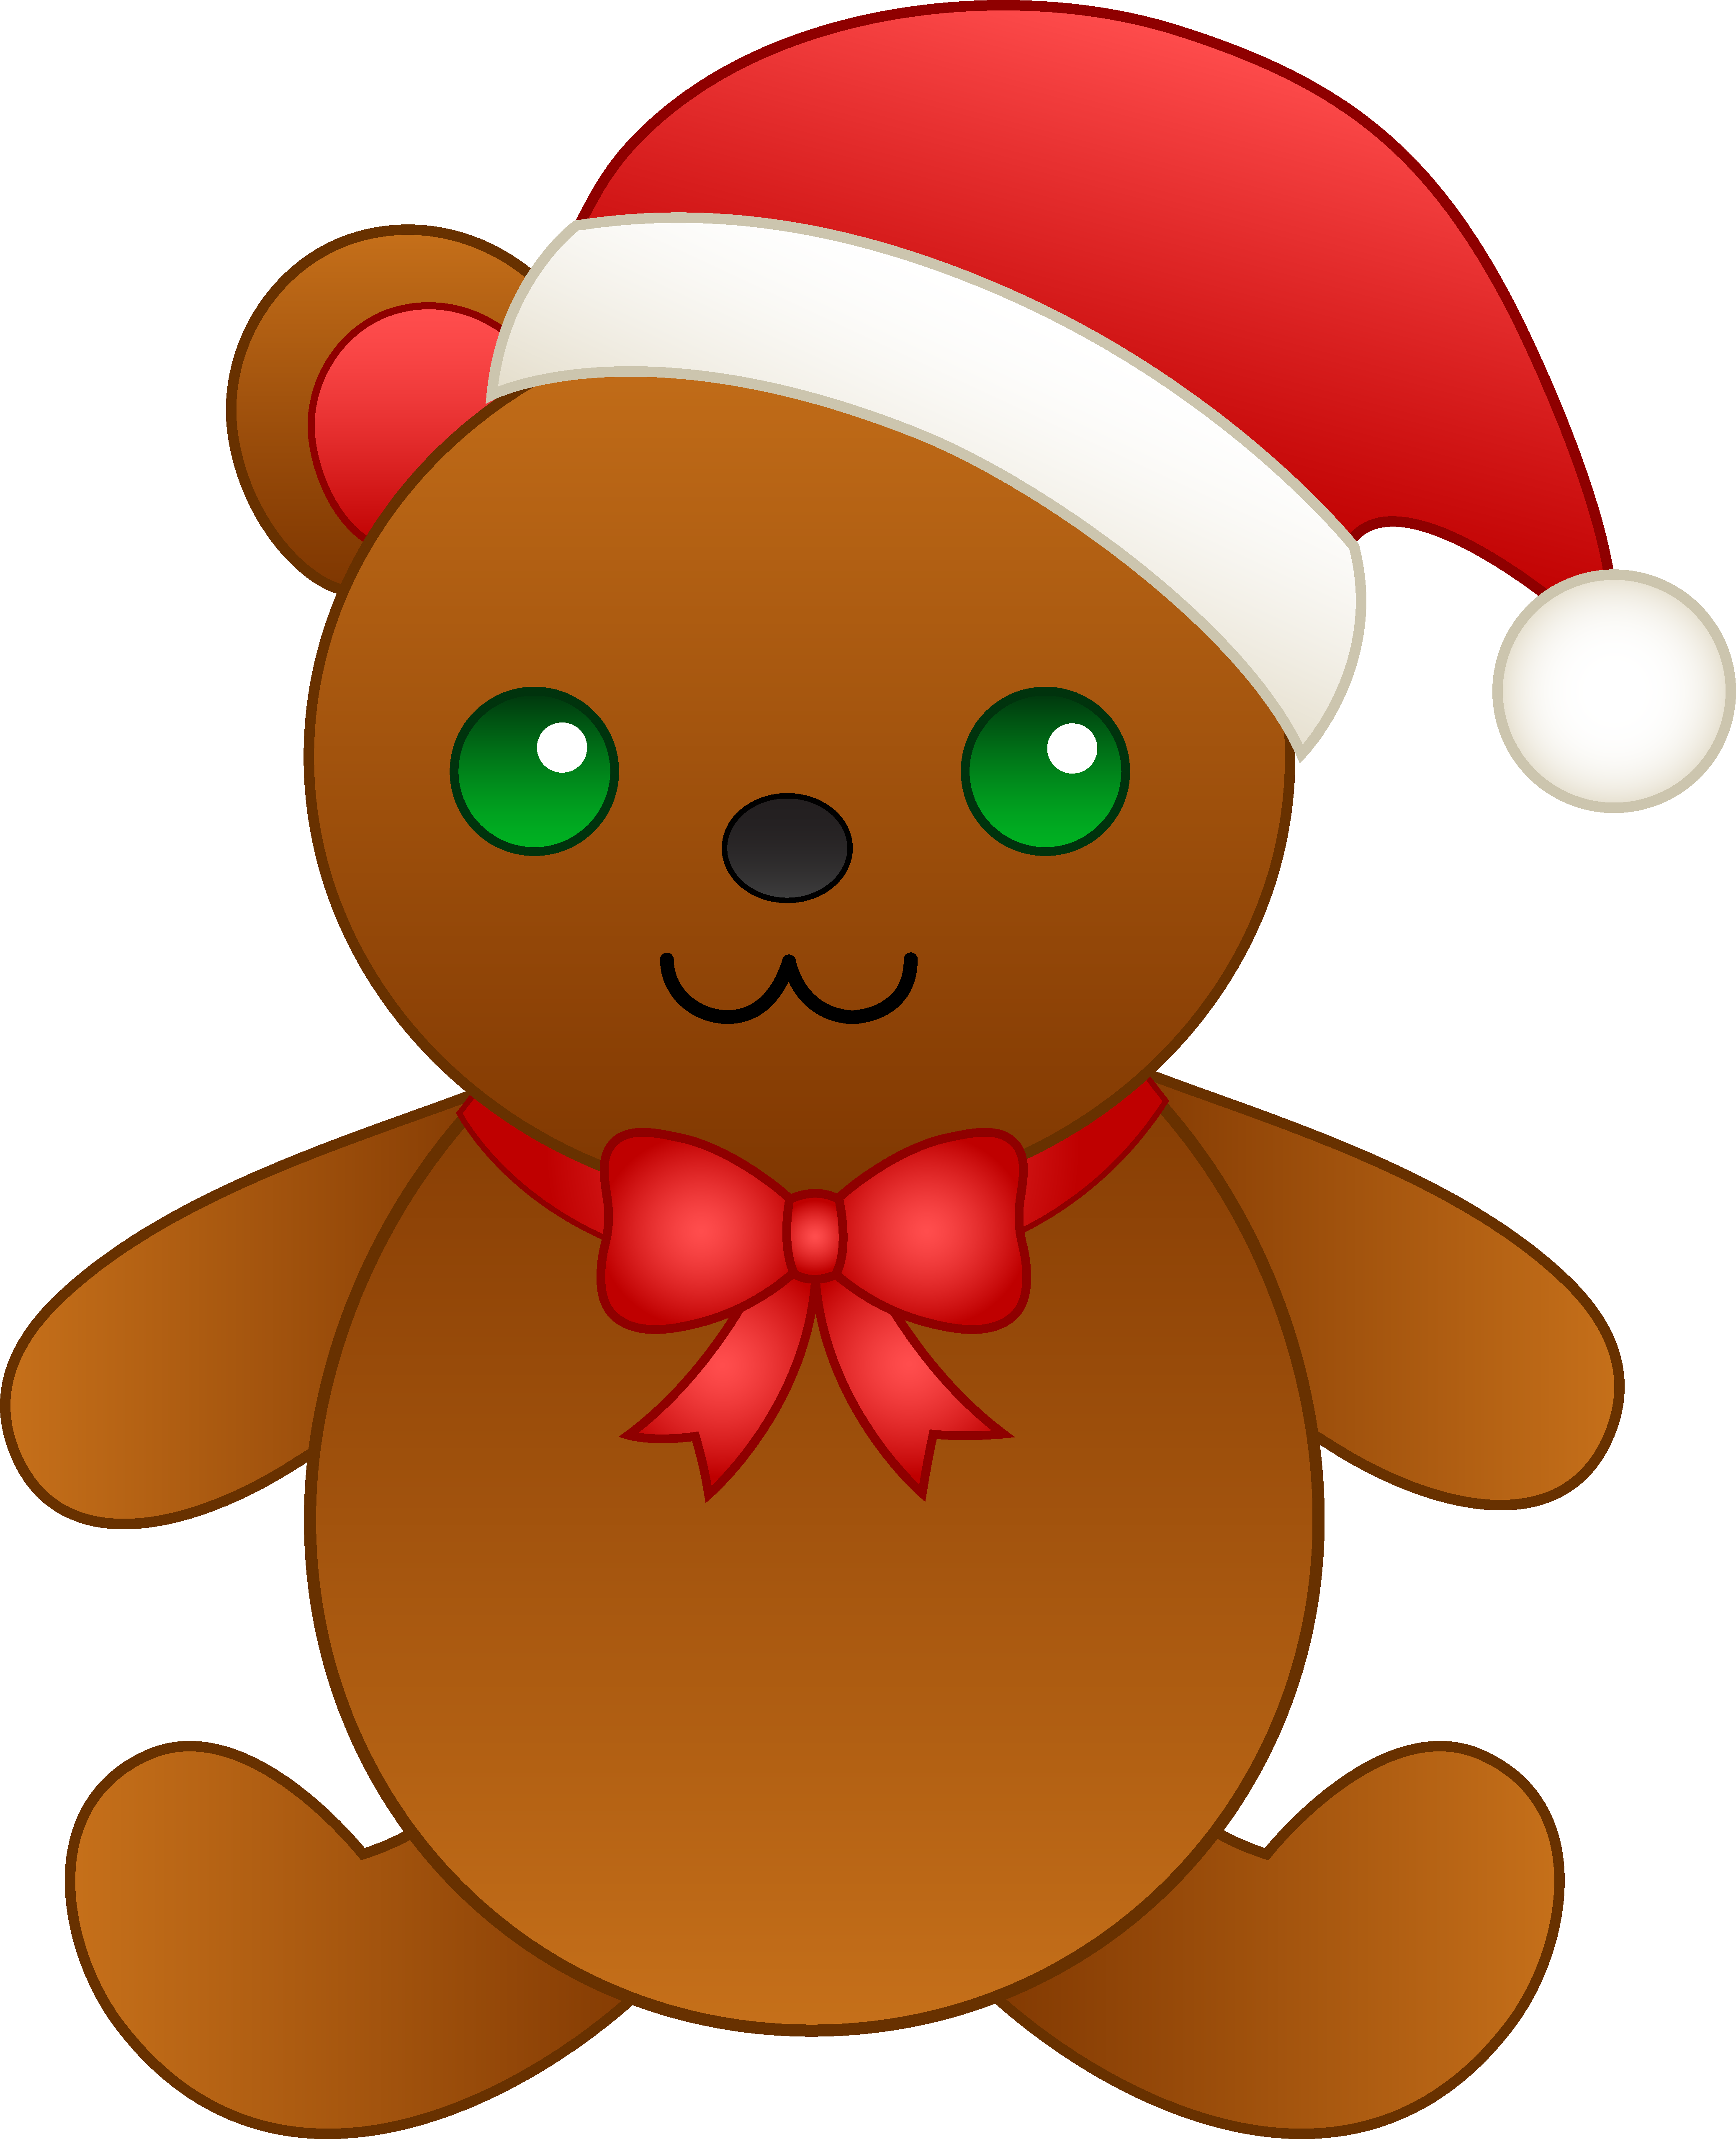 Children christmas clipart picture freeuse library Numbers 1 10 Clipart Panda Free Images Christmas Animals ... picture freeuse library